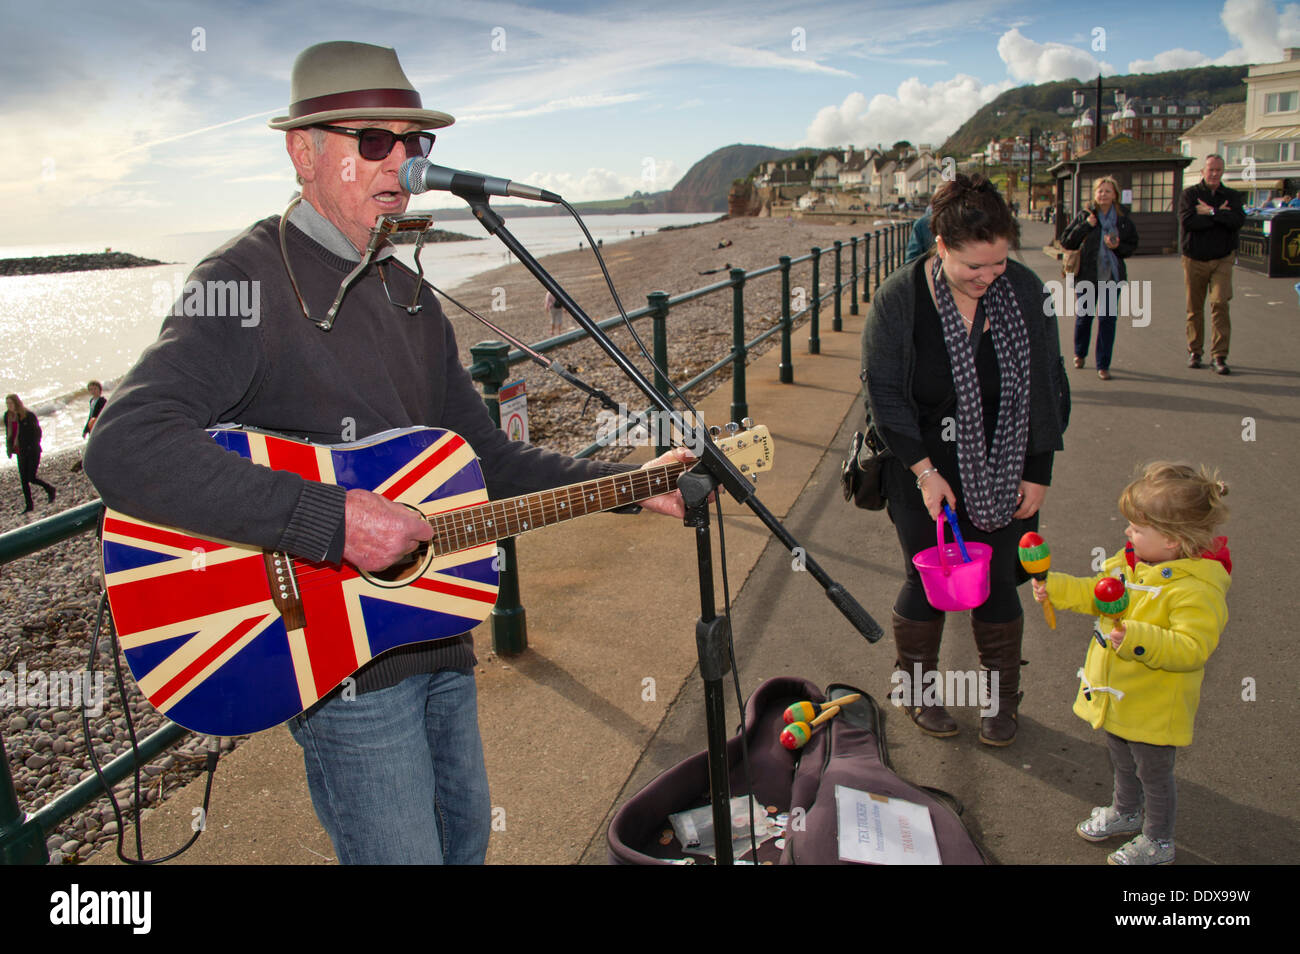 Sidmouth,Devonshire,UK,a seaside town on the South Coast with a promenade and beach,busker and beached boats.a UK Stock Photo